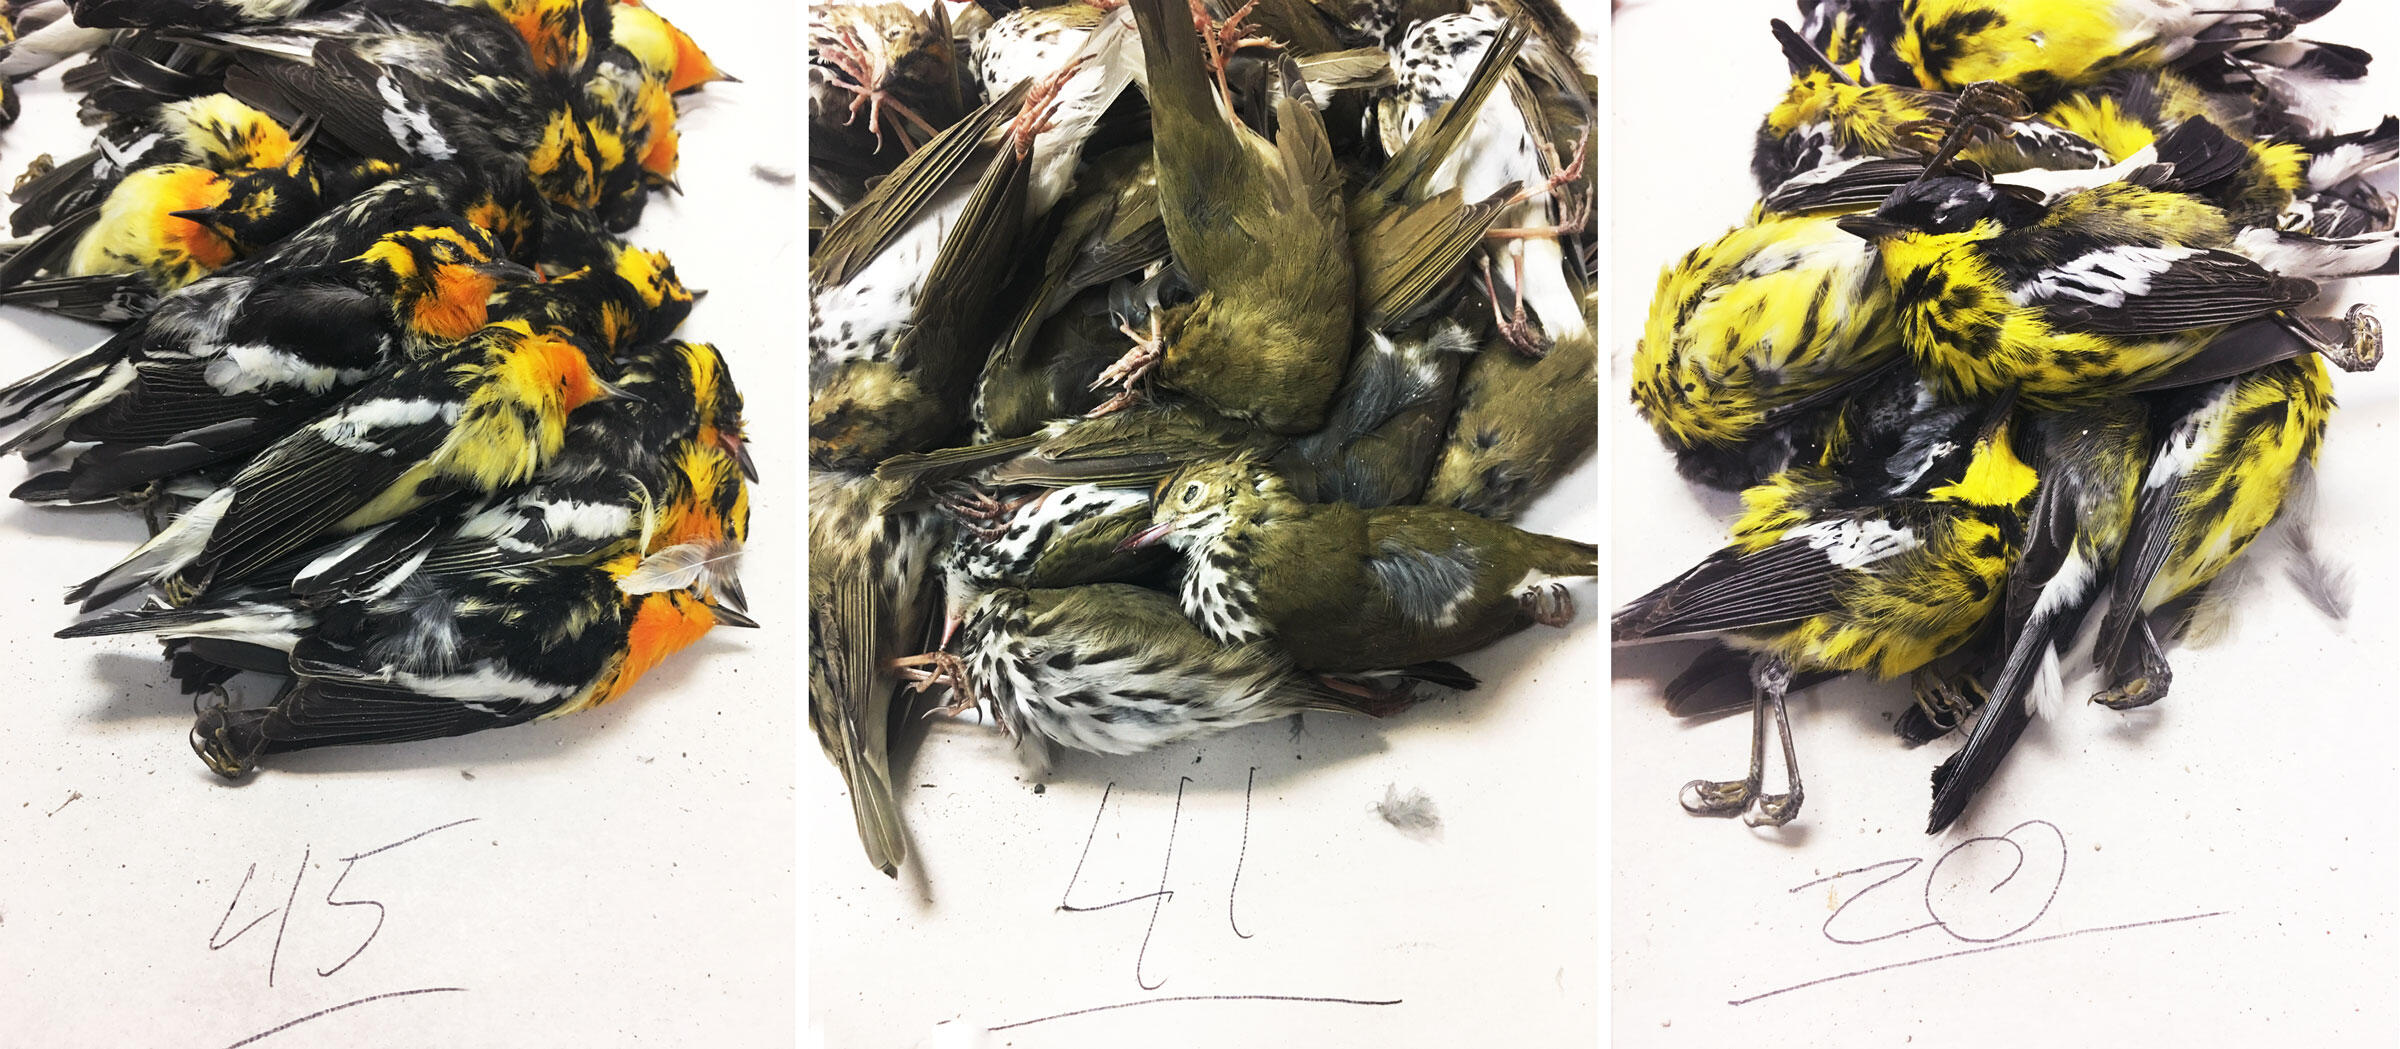 (From left to right) Blackburnian Warblers, Ovenbirds, and Magnolia Warblers were among the top casualties in this week's glass-induced tragedy in Galveston, Texas. Some of the counts shown here are incomplete. Josh Henderson